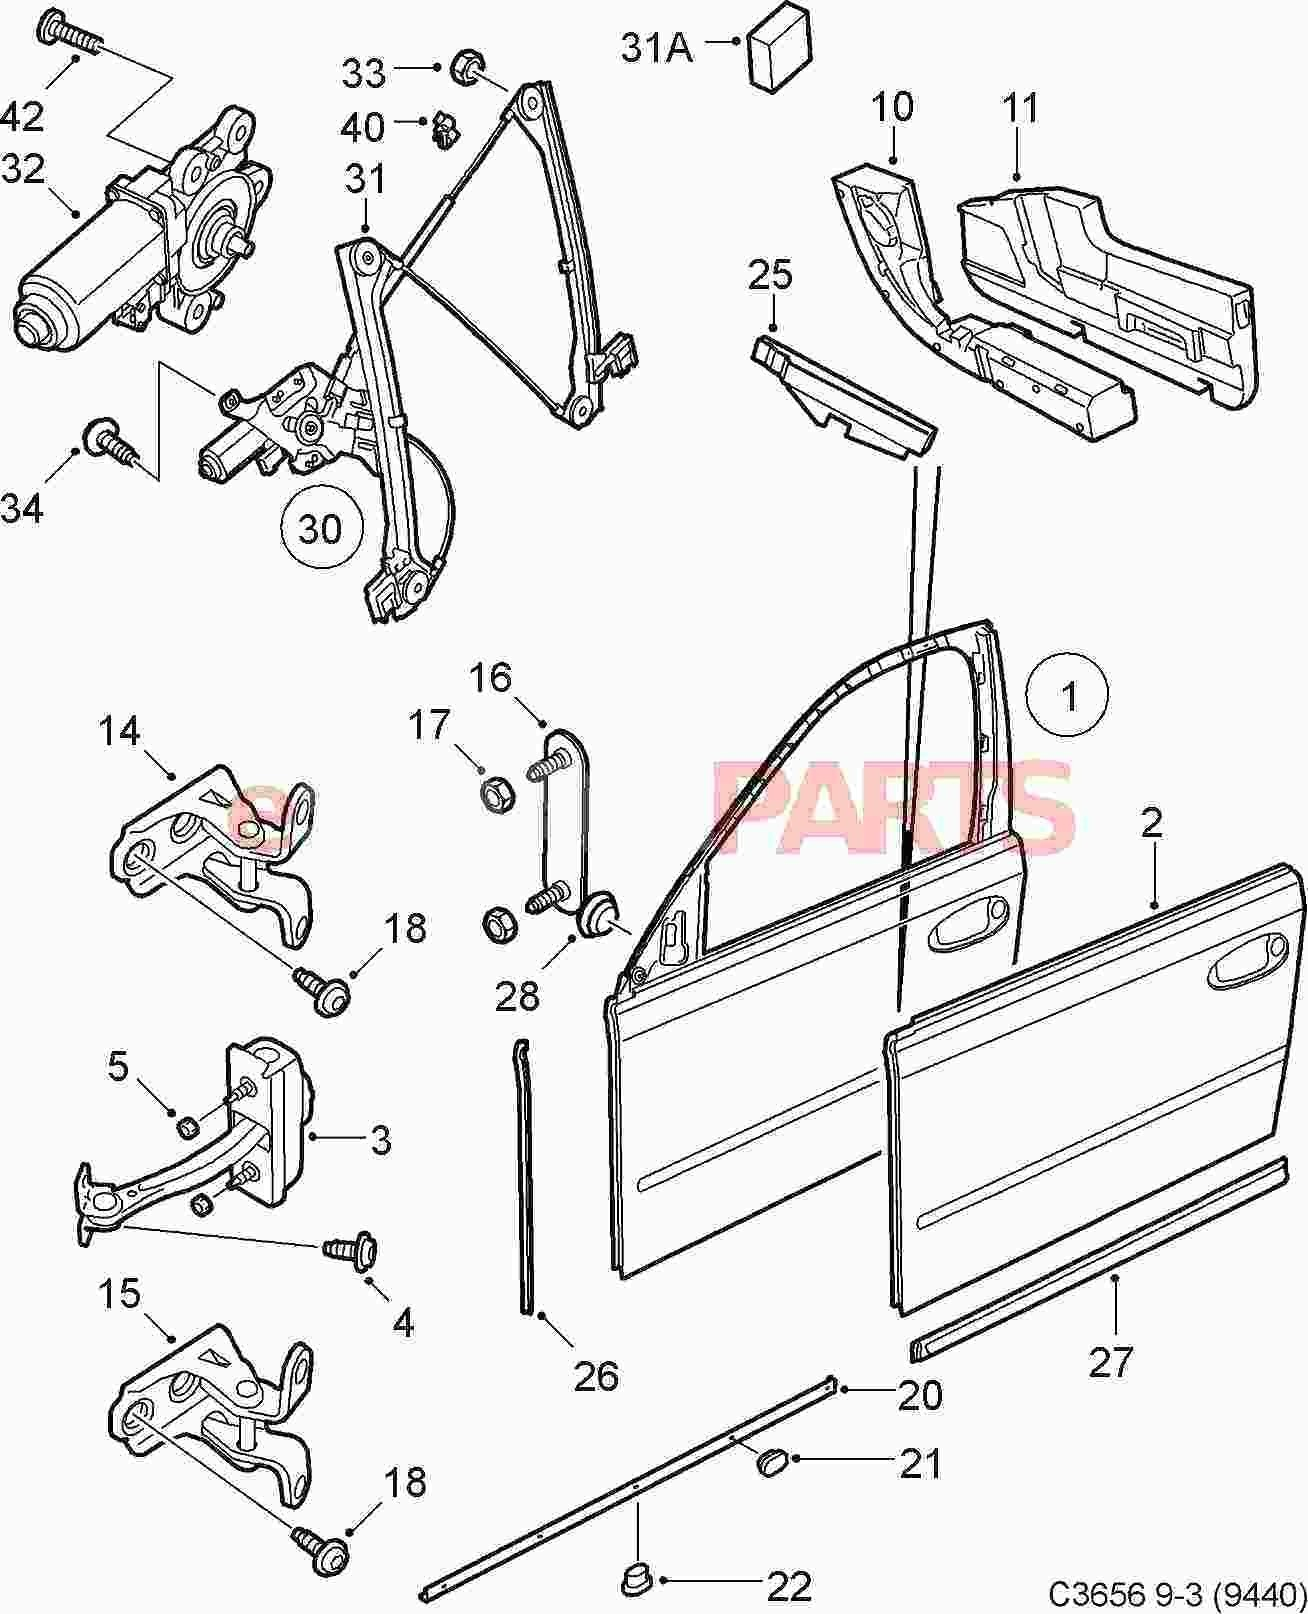 car undercarriage parts diagram my wiring diagram rh detoxicrecenze com car undercarriage parts diagram car undercarriage diagram chrysler 300